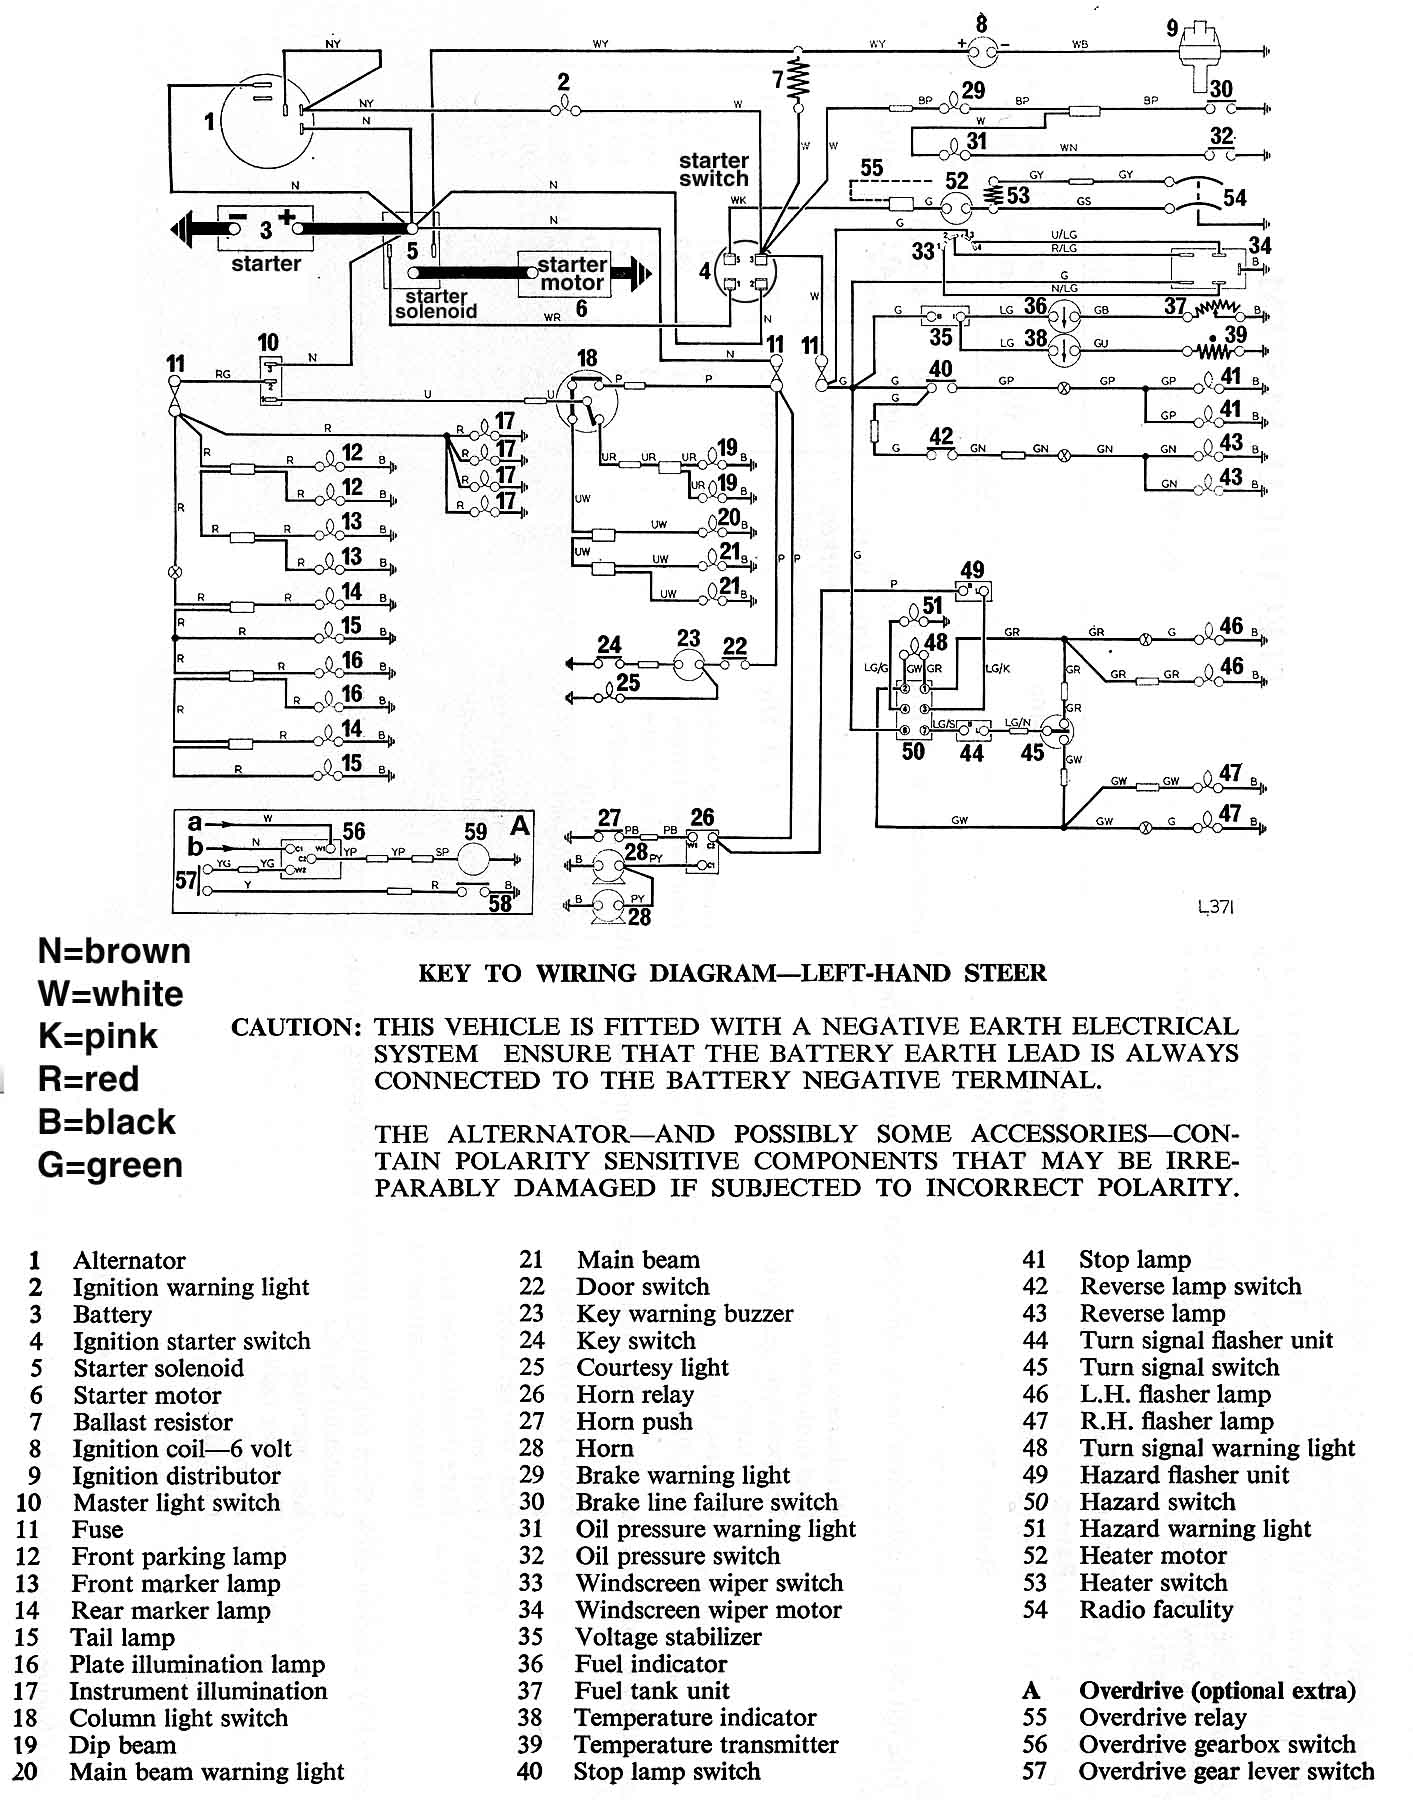 Triumph Solenoid Wiring Diy Enthusiasts Diagrams Push Button Diagram 4 Pin Search For Schematics And Spitfire Gt6 Herald Rh Triumphspitfire Com Post